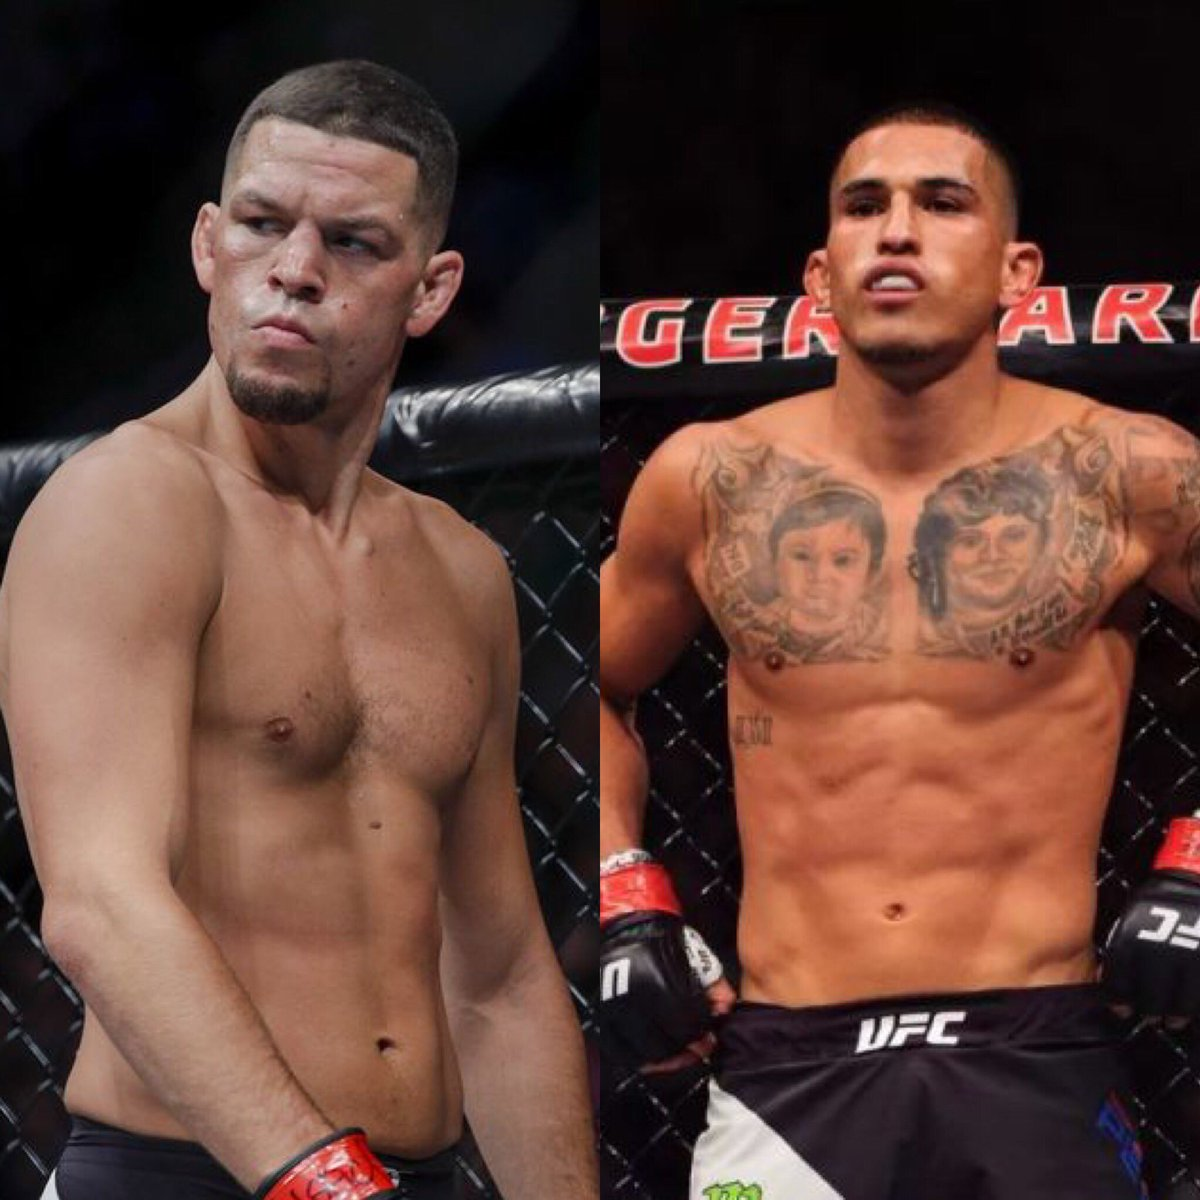 Diaz vs Pettis co main event August 17th at 170lbs. in Anaheim